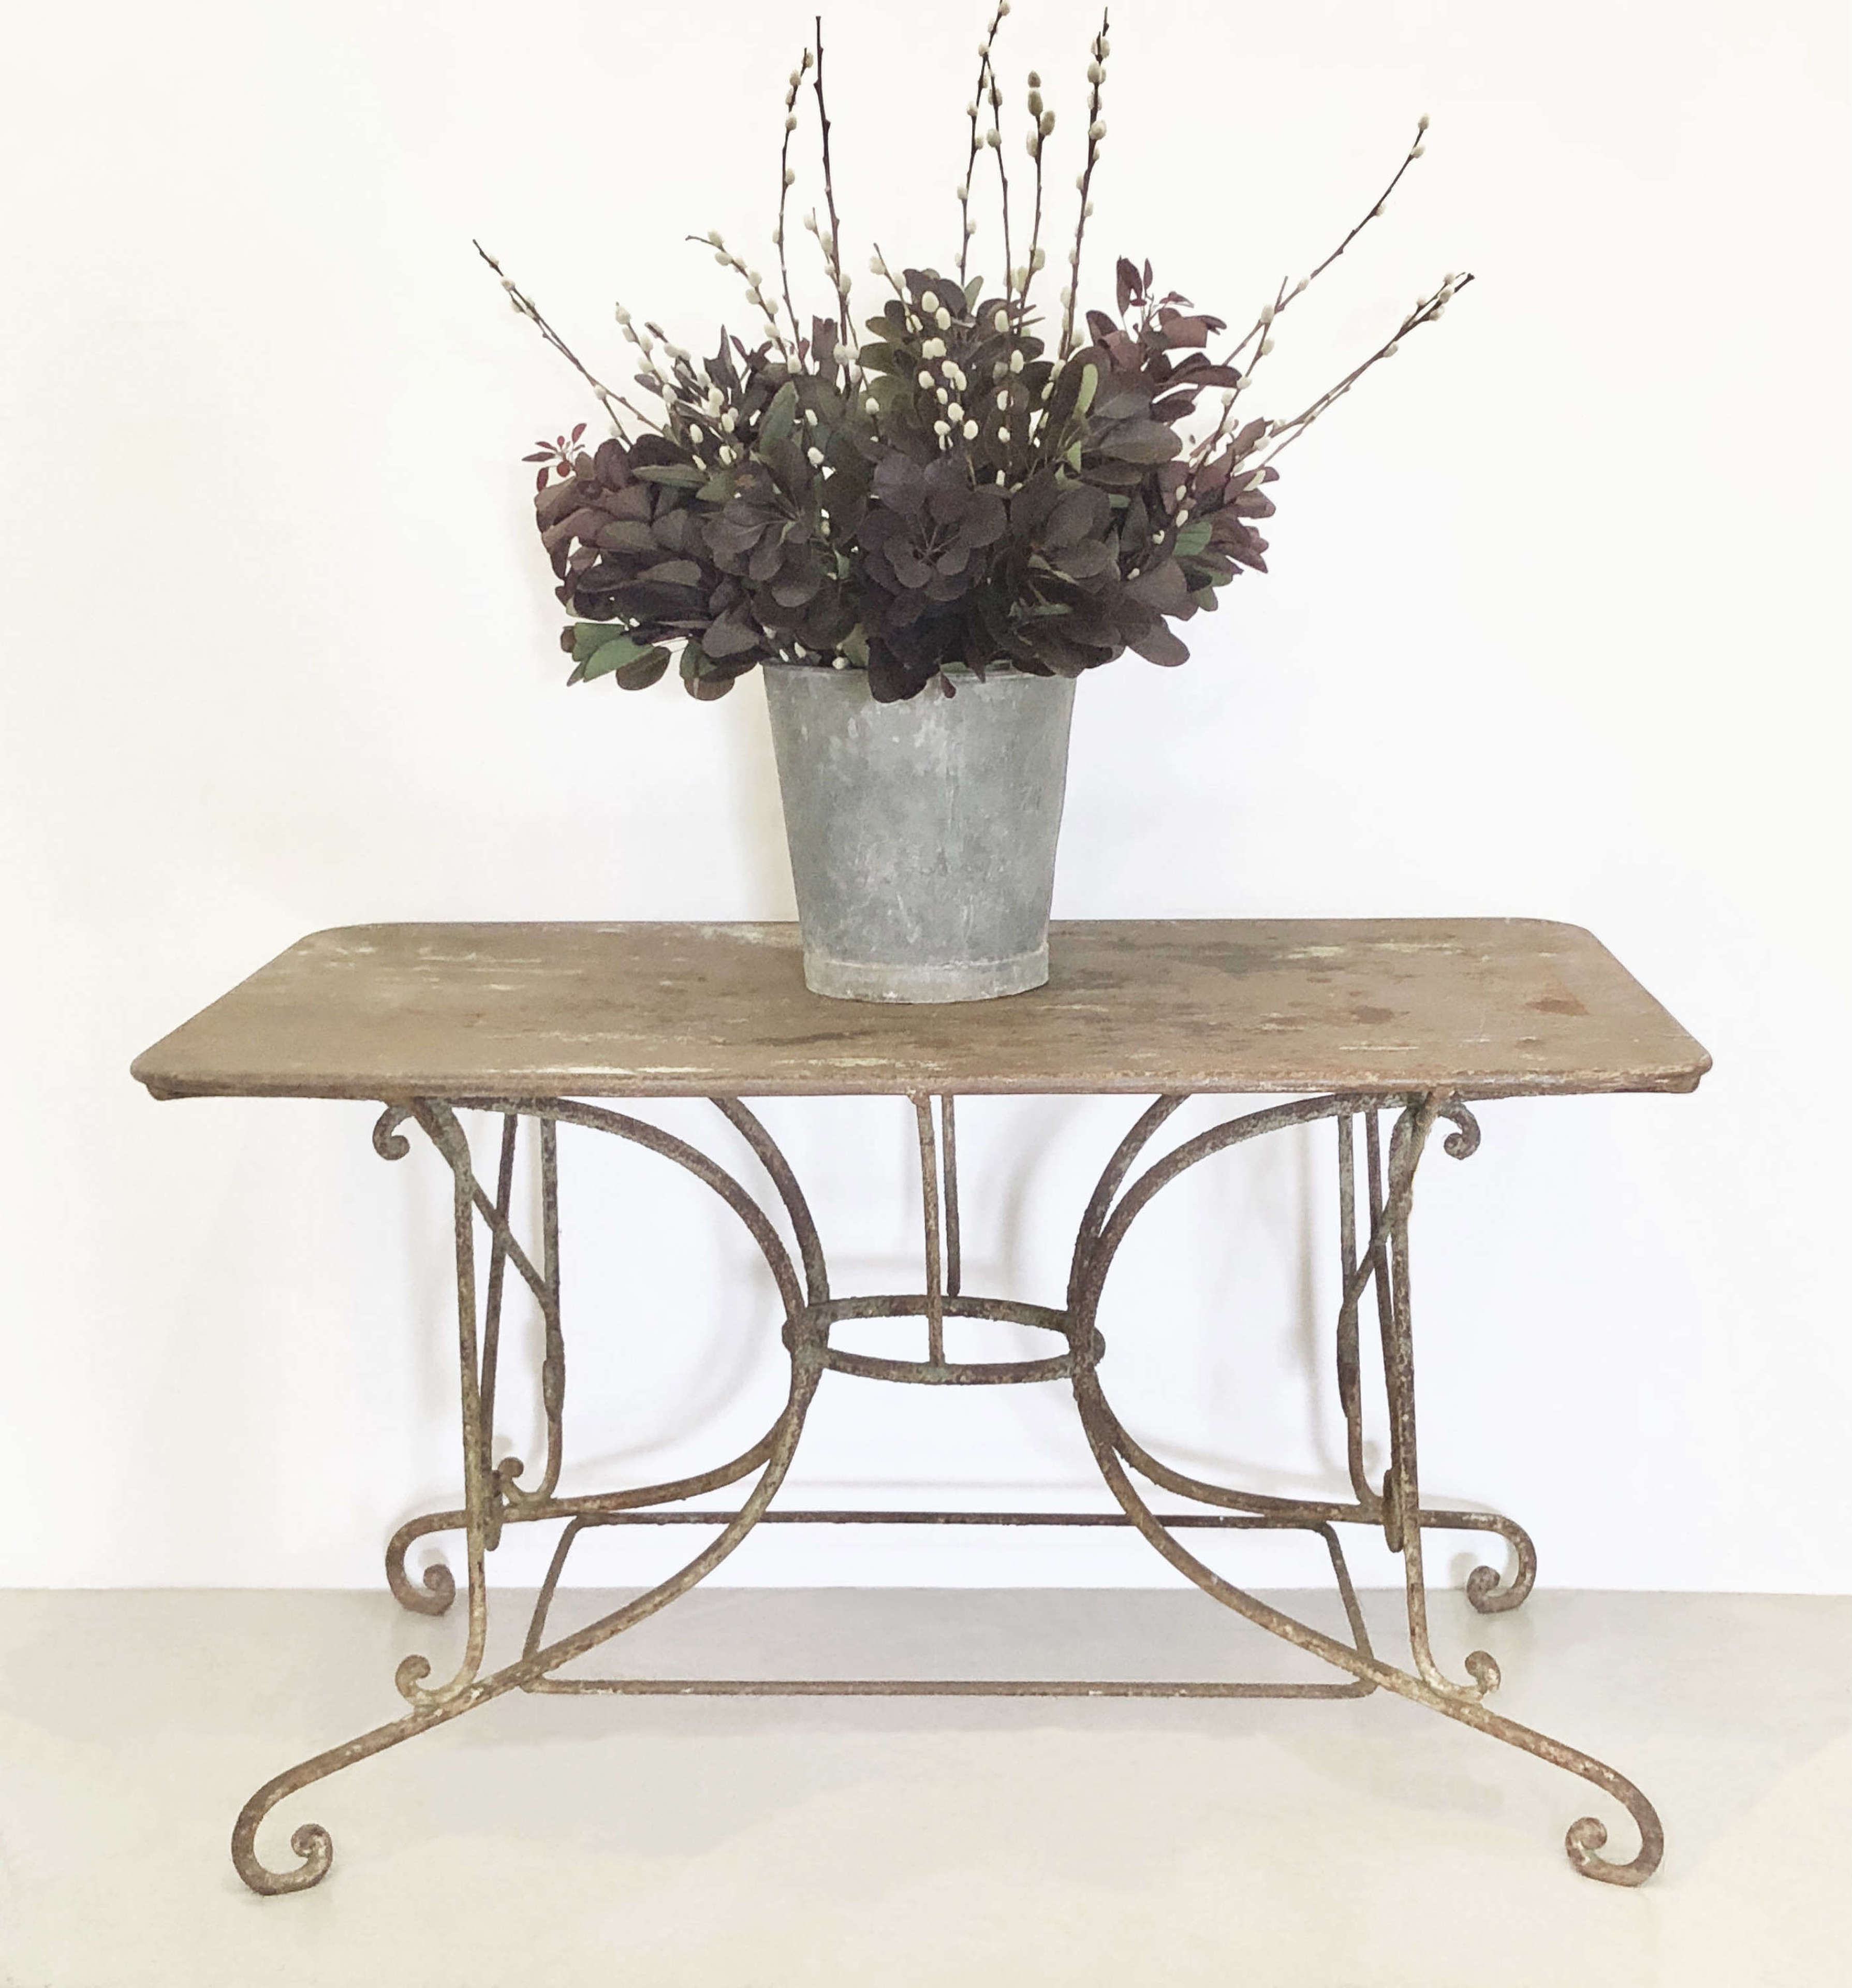 19th c Large French Wrought Iron Table - circa 1870